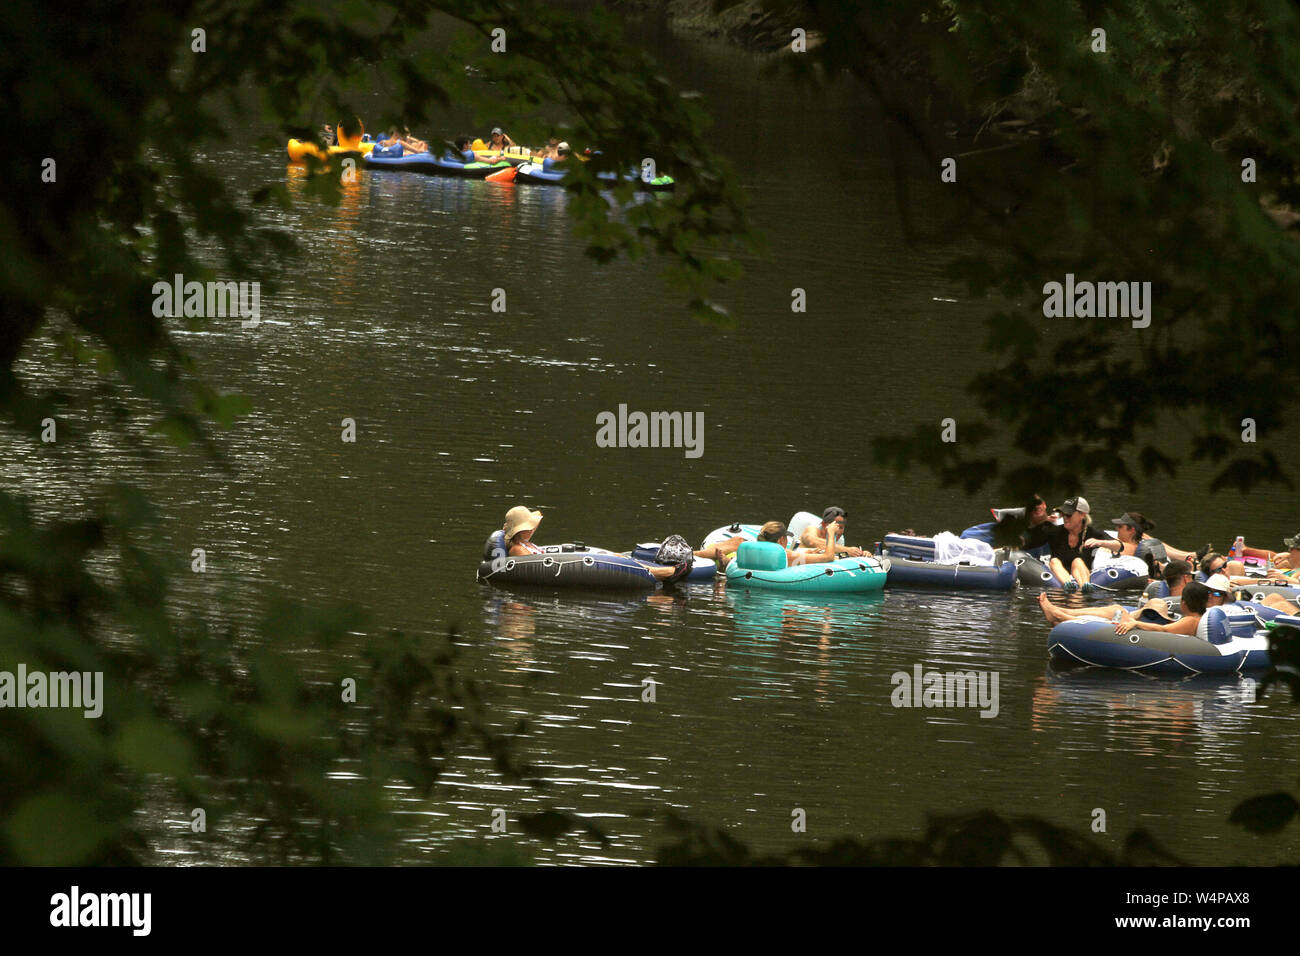 People tubing on Neuse River in North Carolina, USA Stock Photo